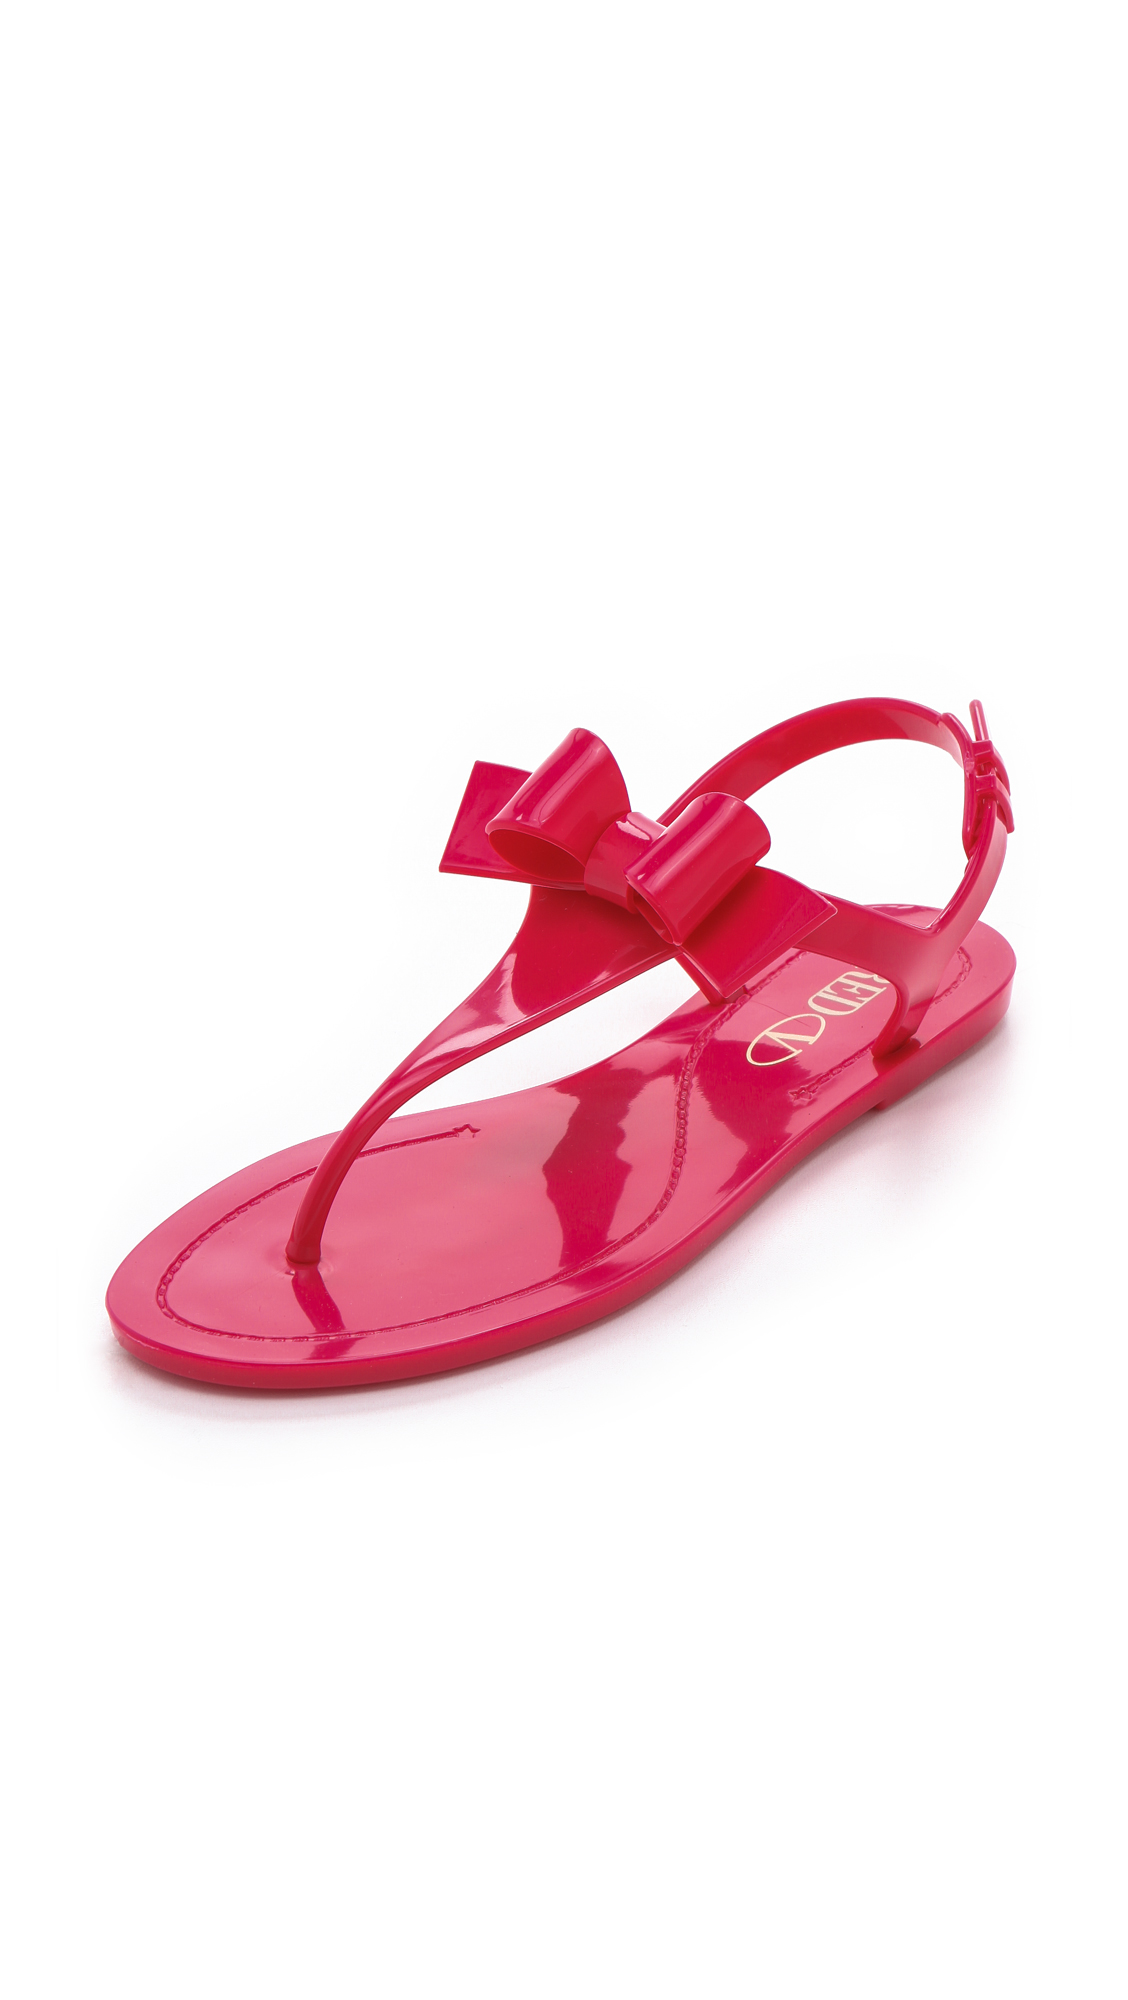 Lyst Red Valentino Bow Jelly Sandals In Pink